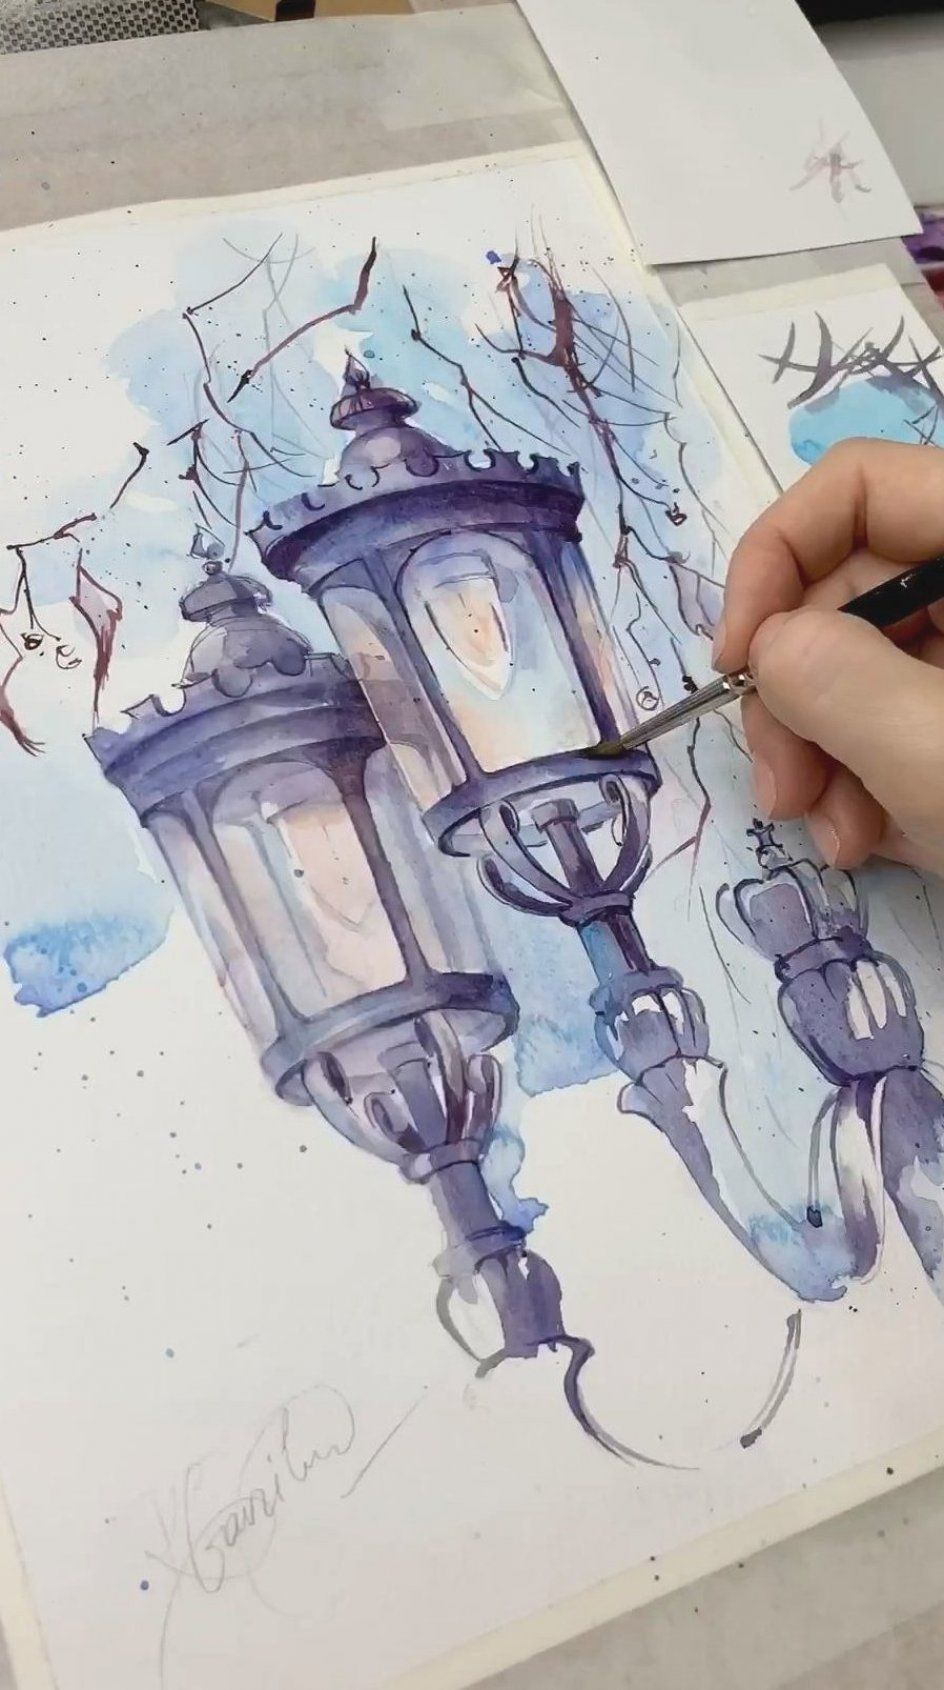 The original watercolor drawing The lanterns in London city   Etsy -   - #AbstractPaintings #ArtHistory #City #drawing #Etsy #lanterns #london #original #watercolor #WatercolorPainting